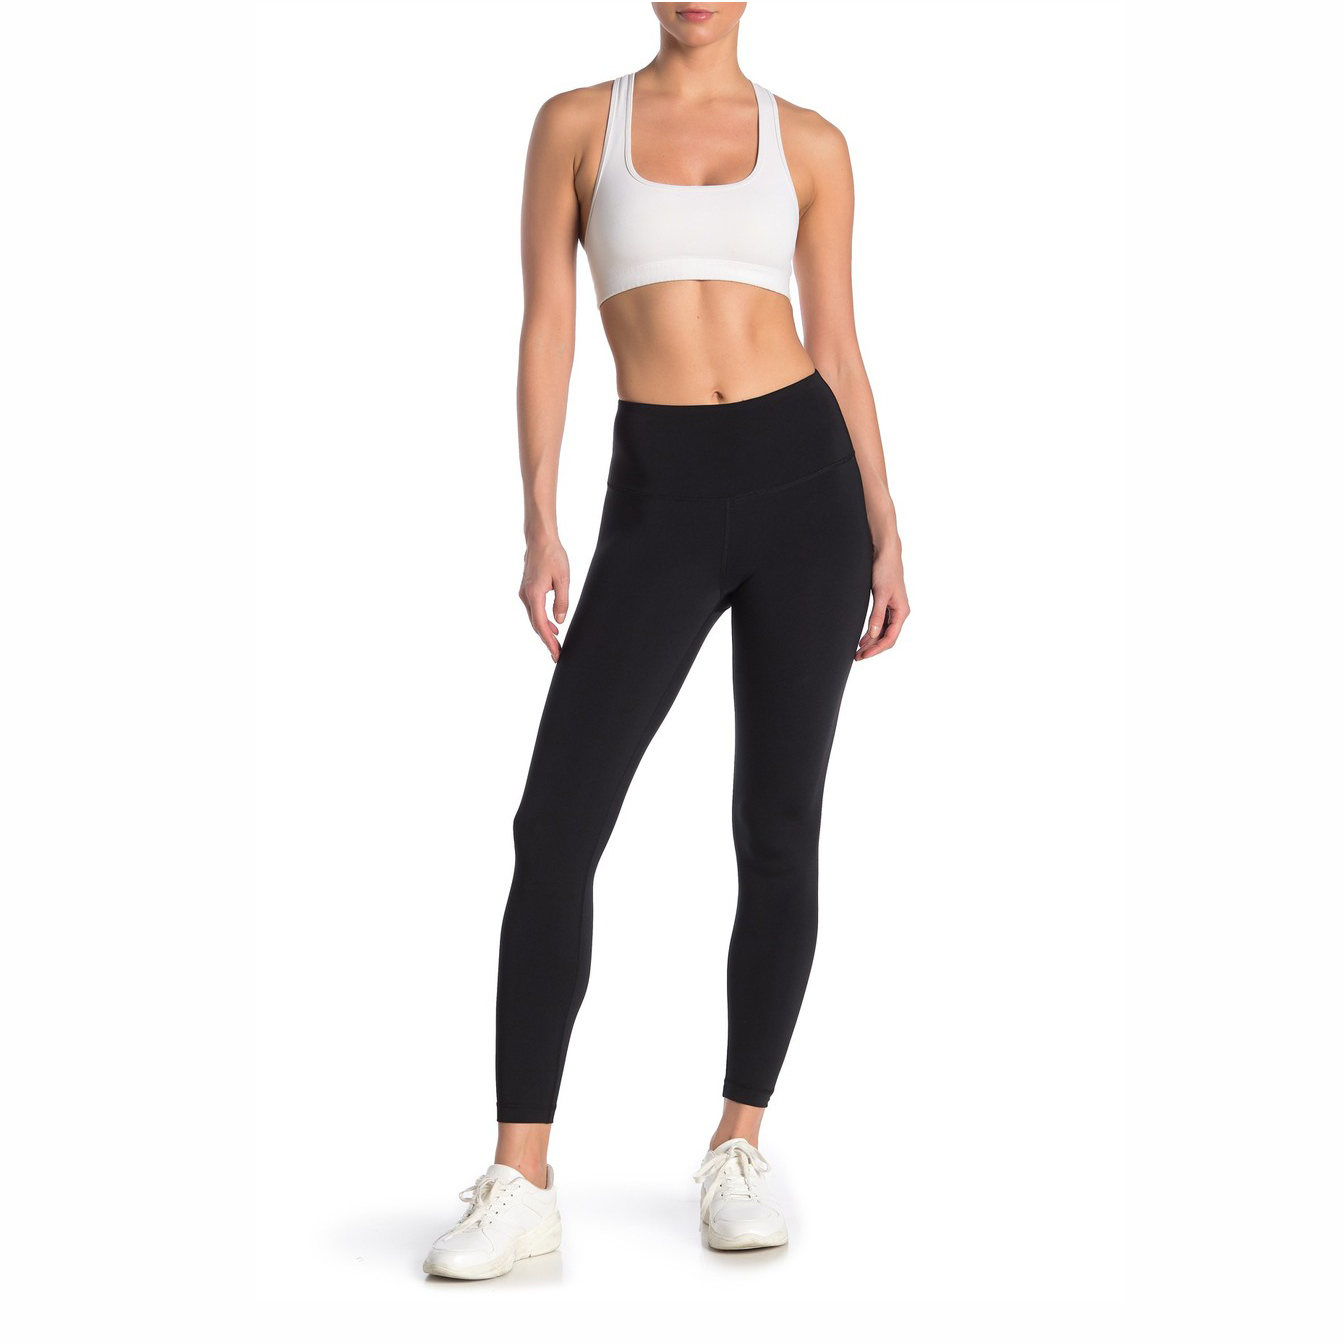 90 Degree by Reflex Missy Interlink High-Waist Leggings